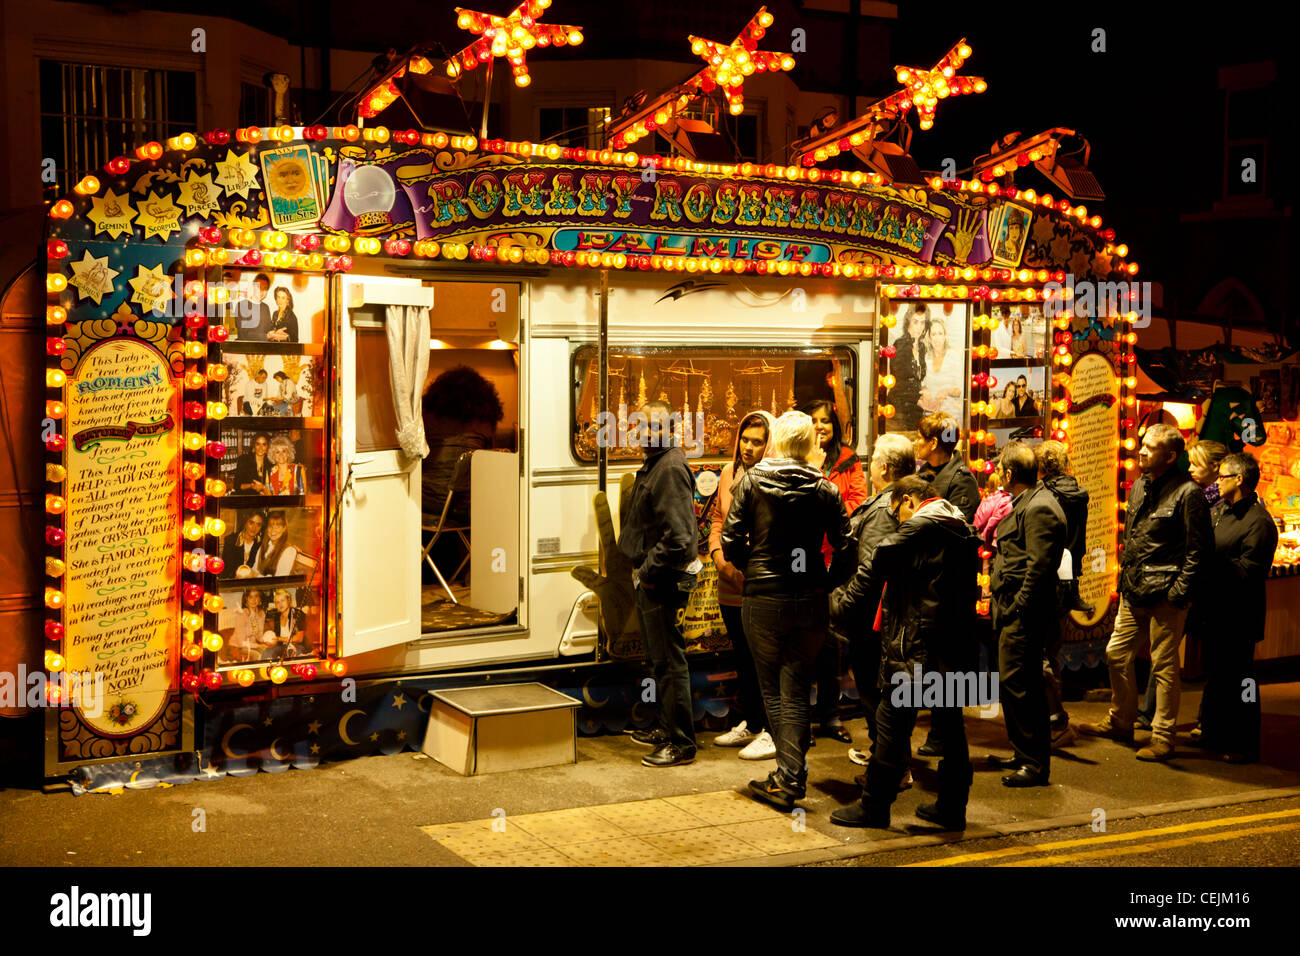 A small crowd waiting for their fortune to be told by a Romany gypsy fortune teller. Goose Fair, Nottingham, England, - Stock Image